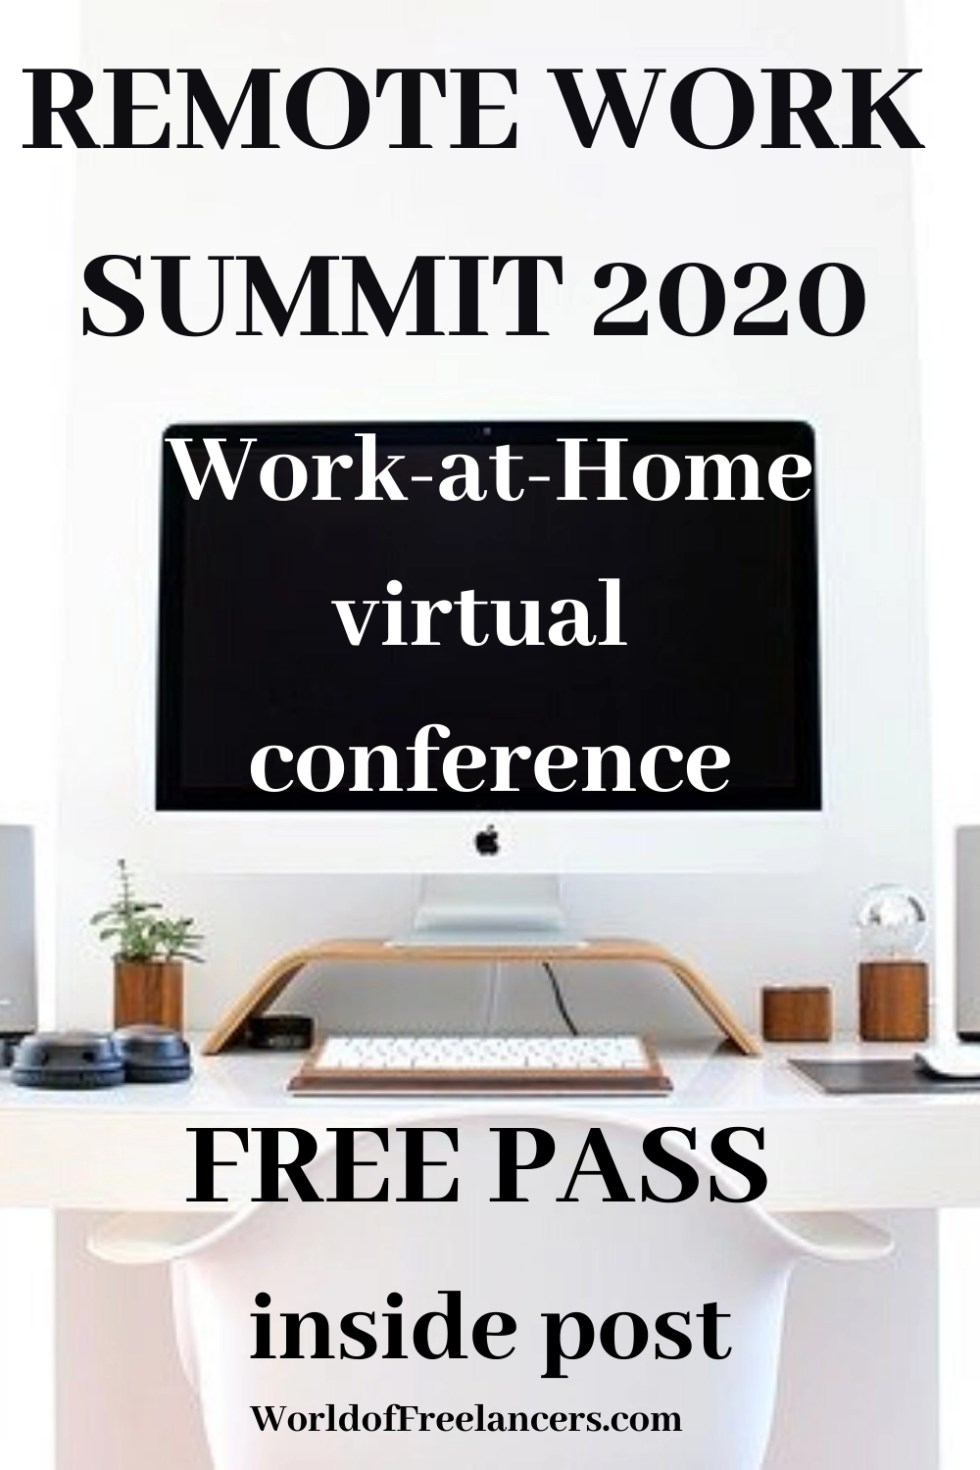 The Remote Work Summit 2020 work-at-home virtual conference, free pass inside post